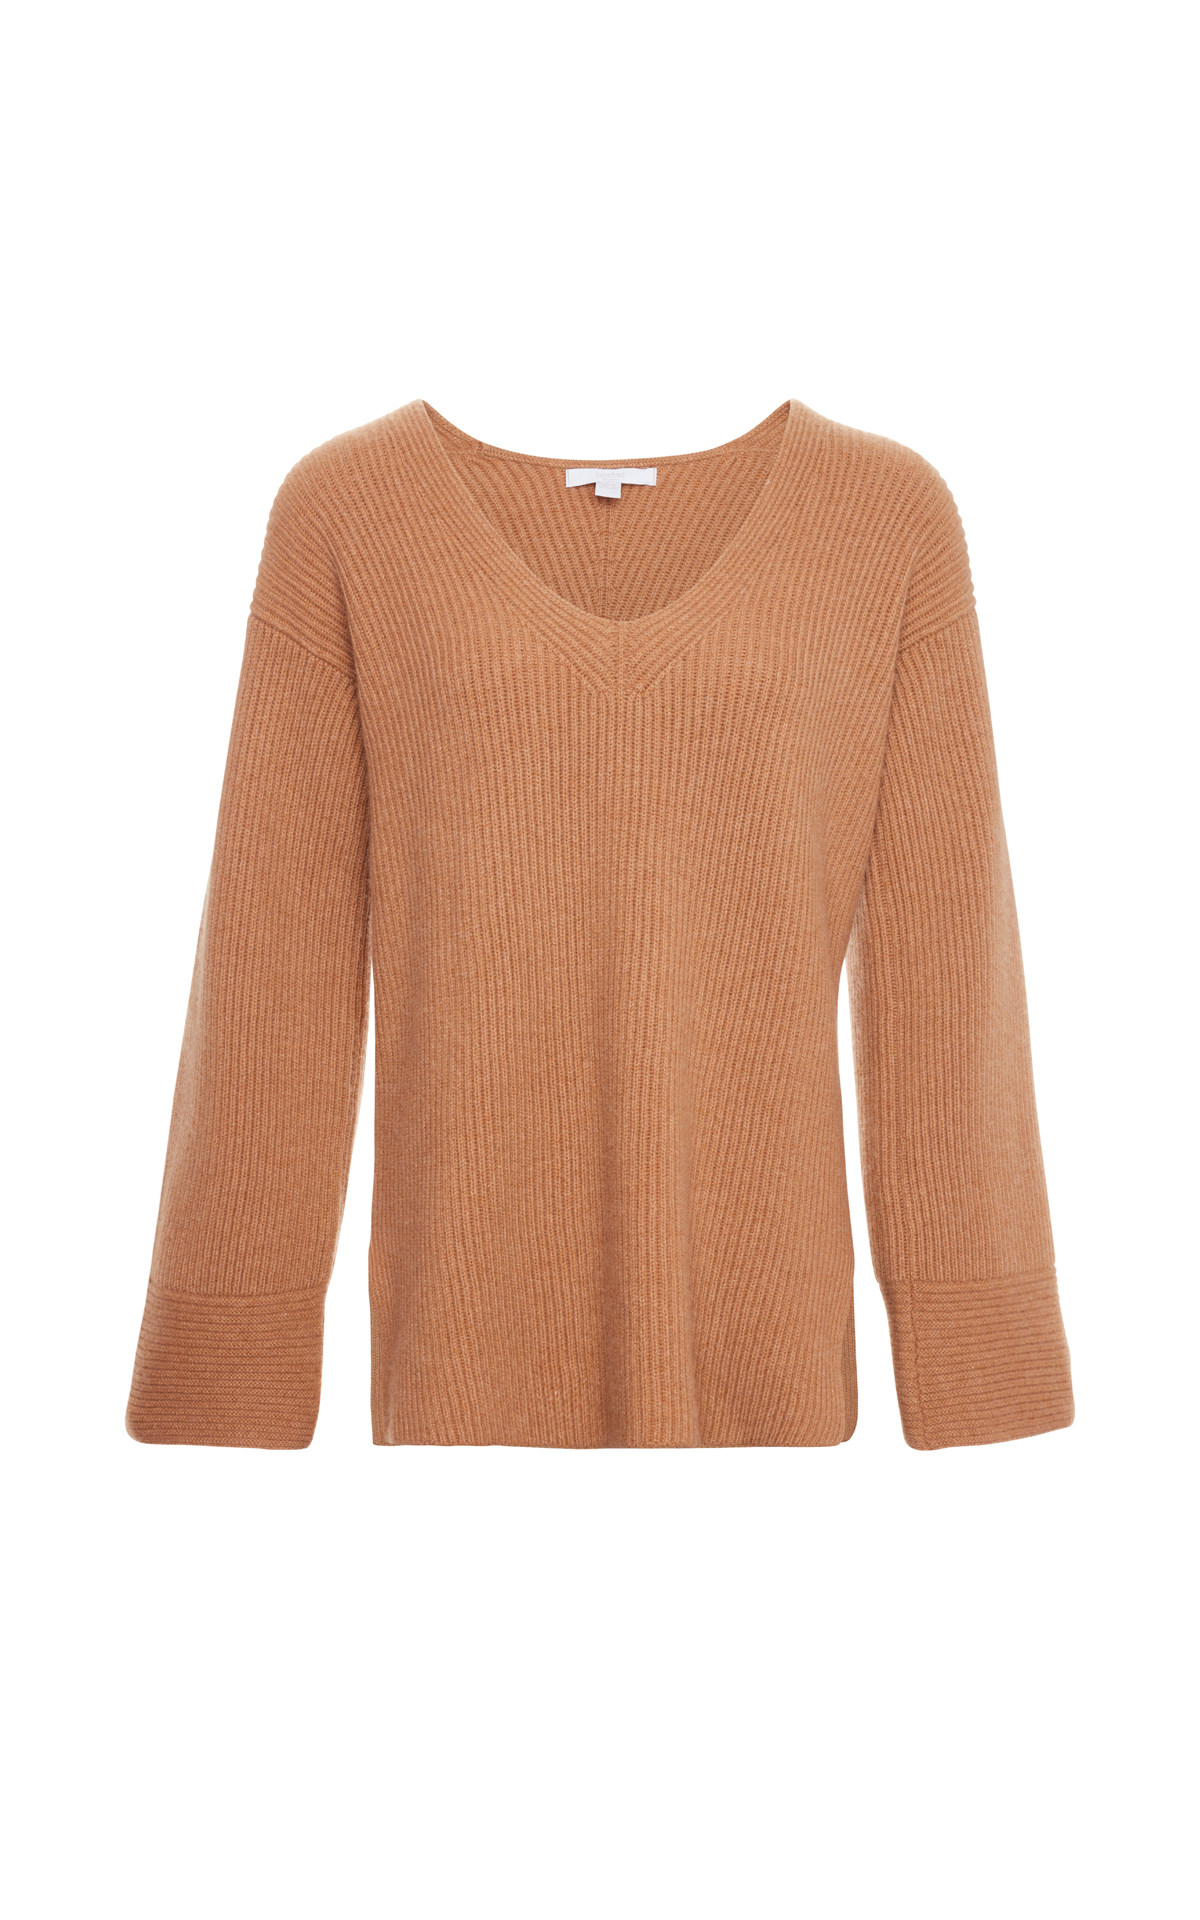 Bamford  Squire sweater from Bicester Village